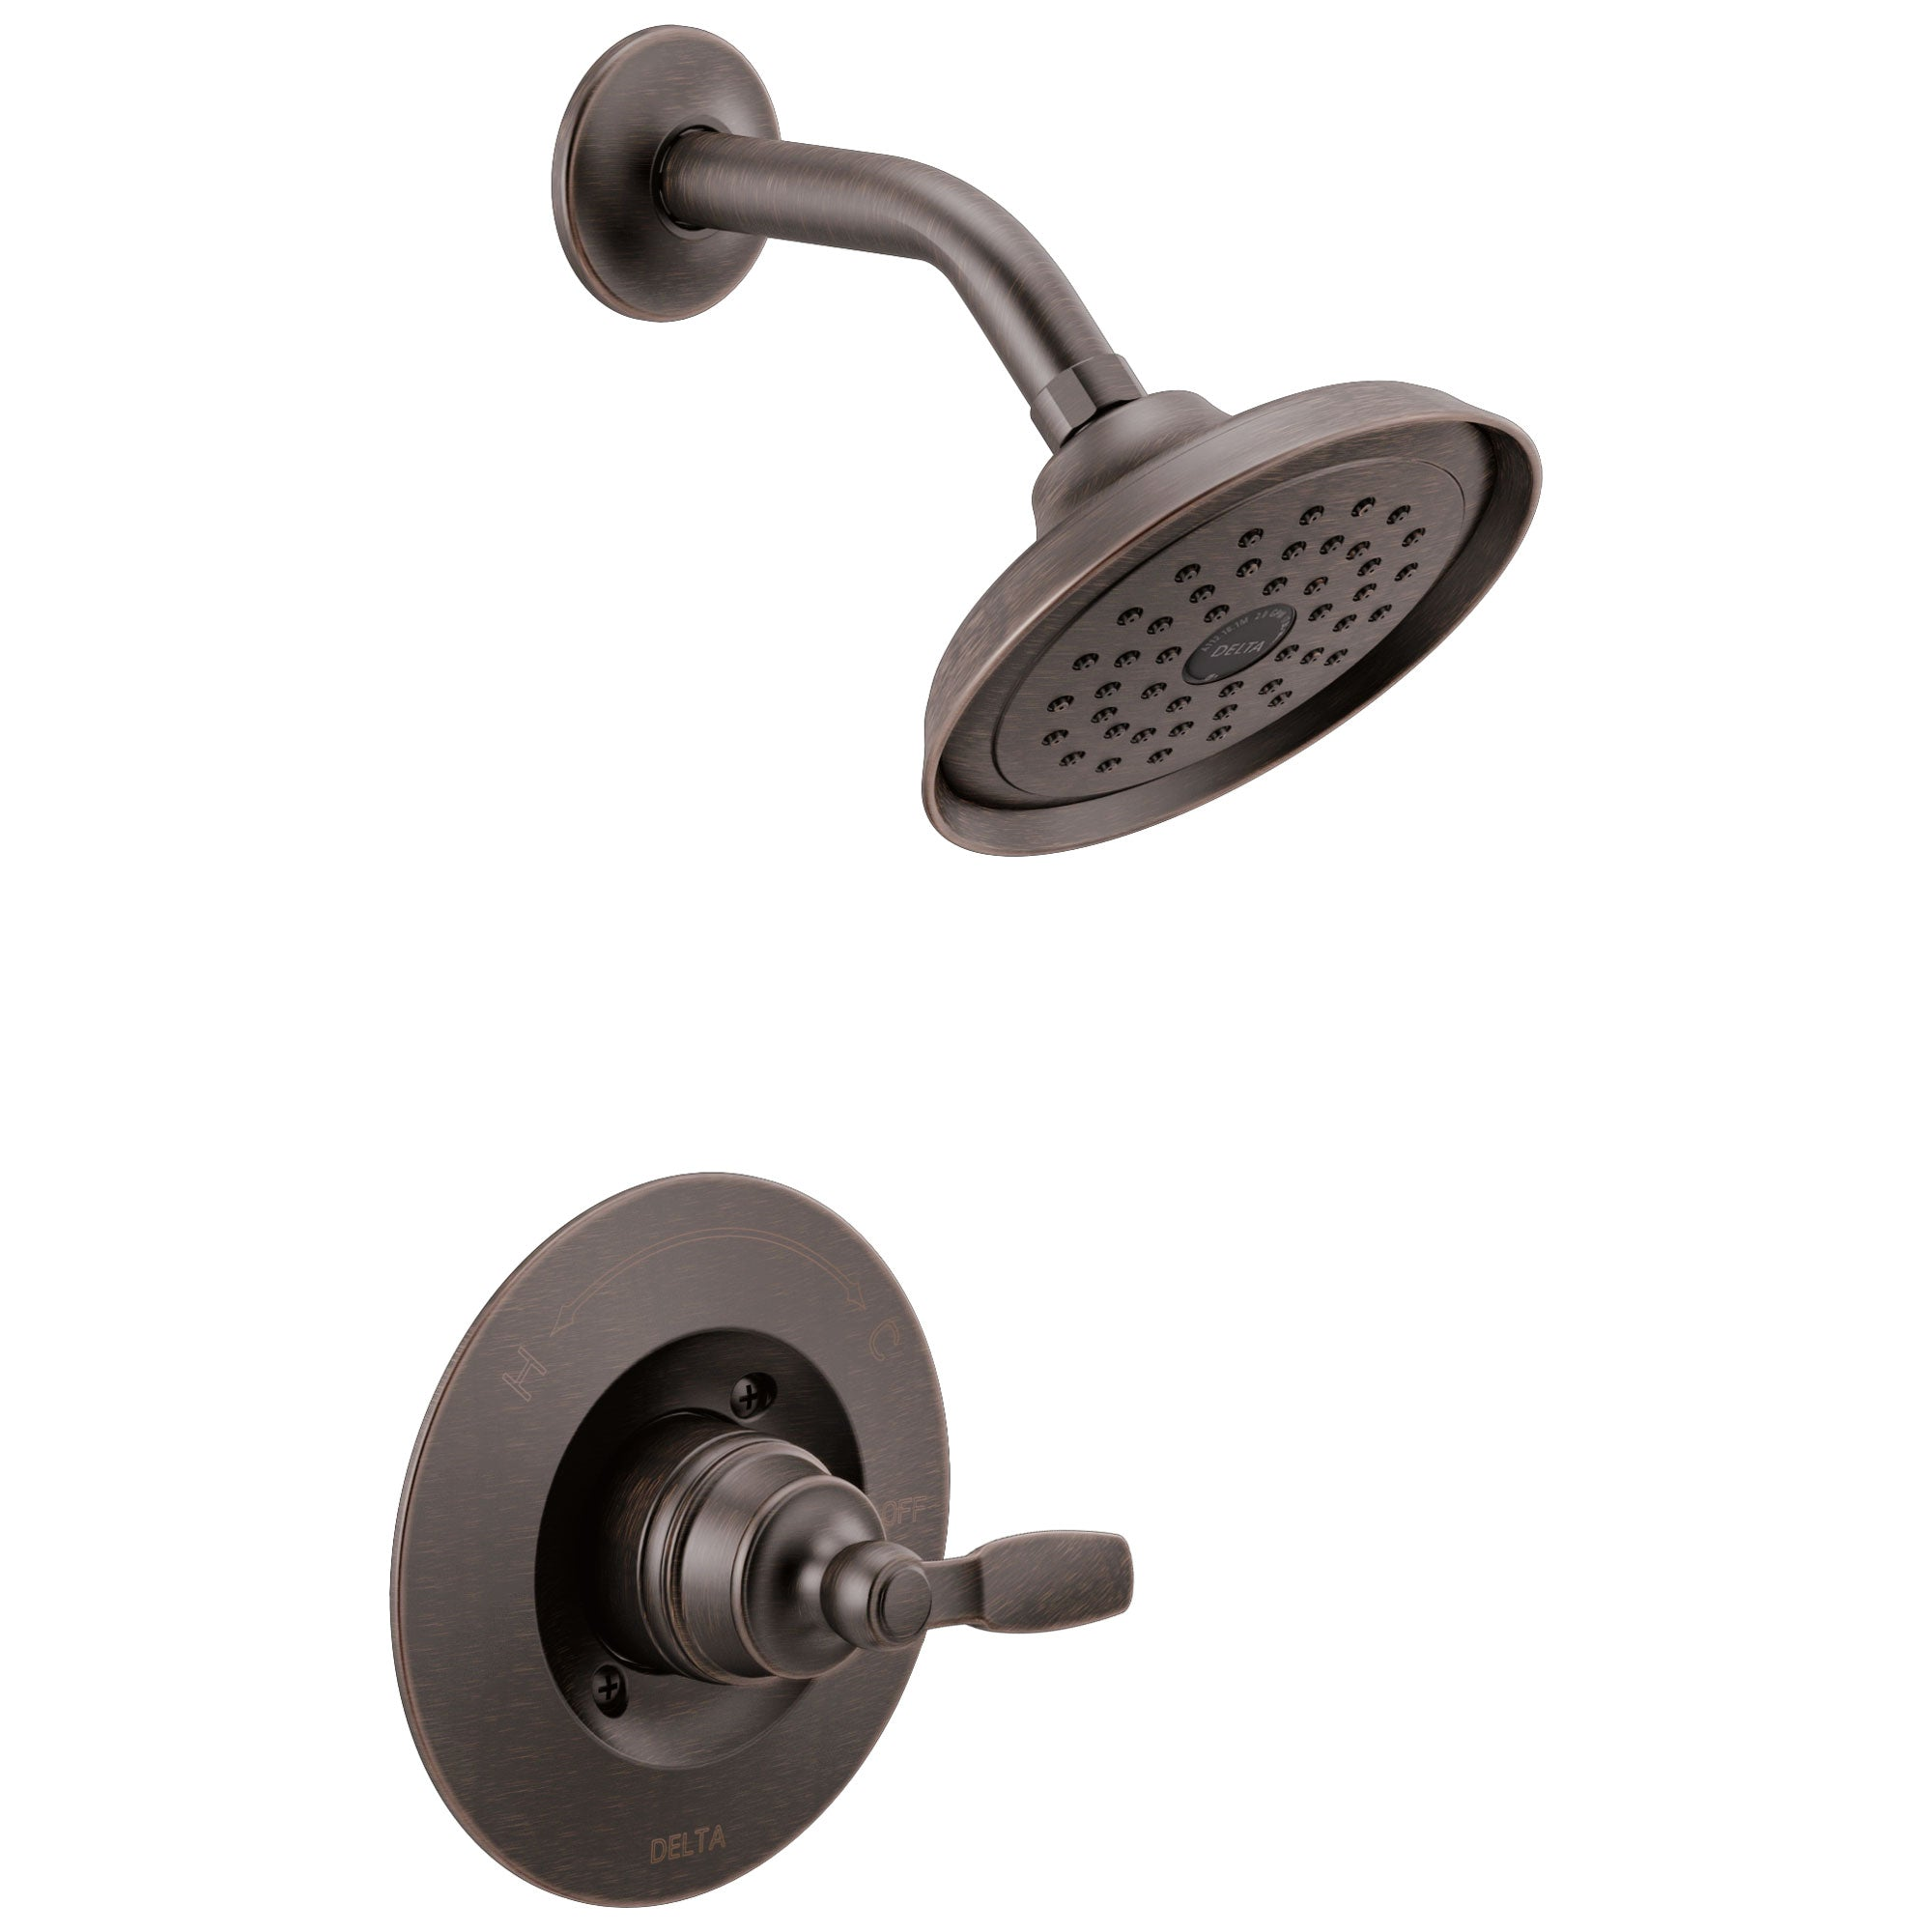 Delta Woodhurst Venetian Bronze Finish Shower only Faucet Includes Single Lever Handle, Cartridge, and Valve with Stops D3520V